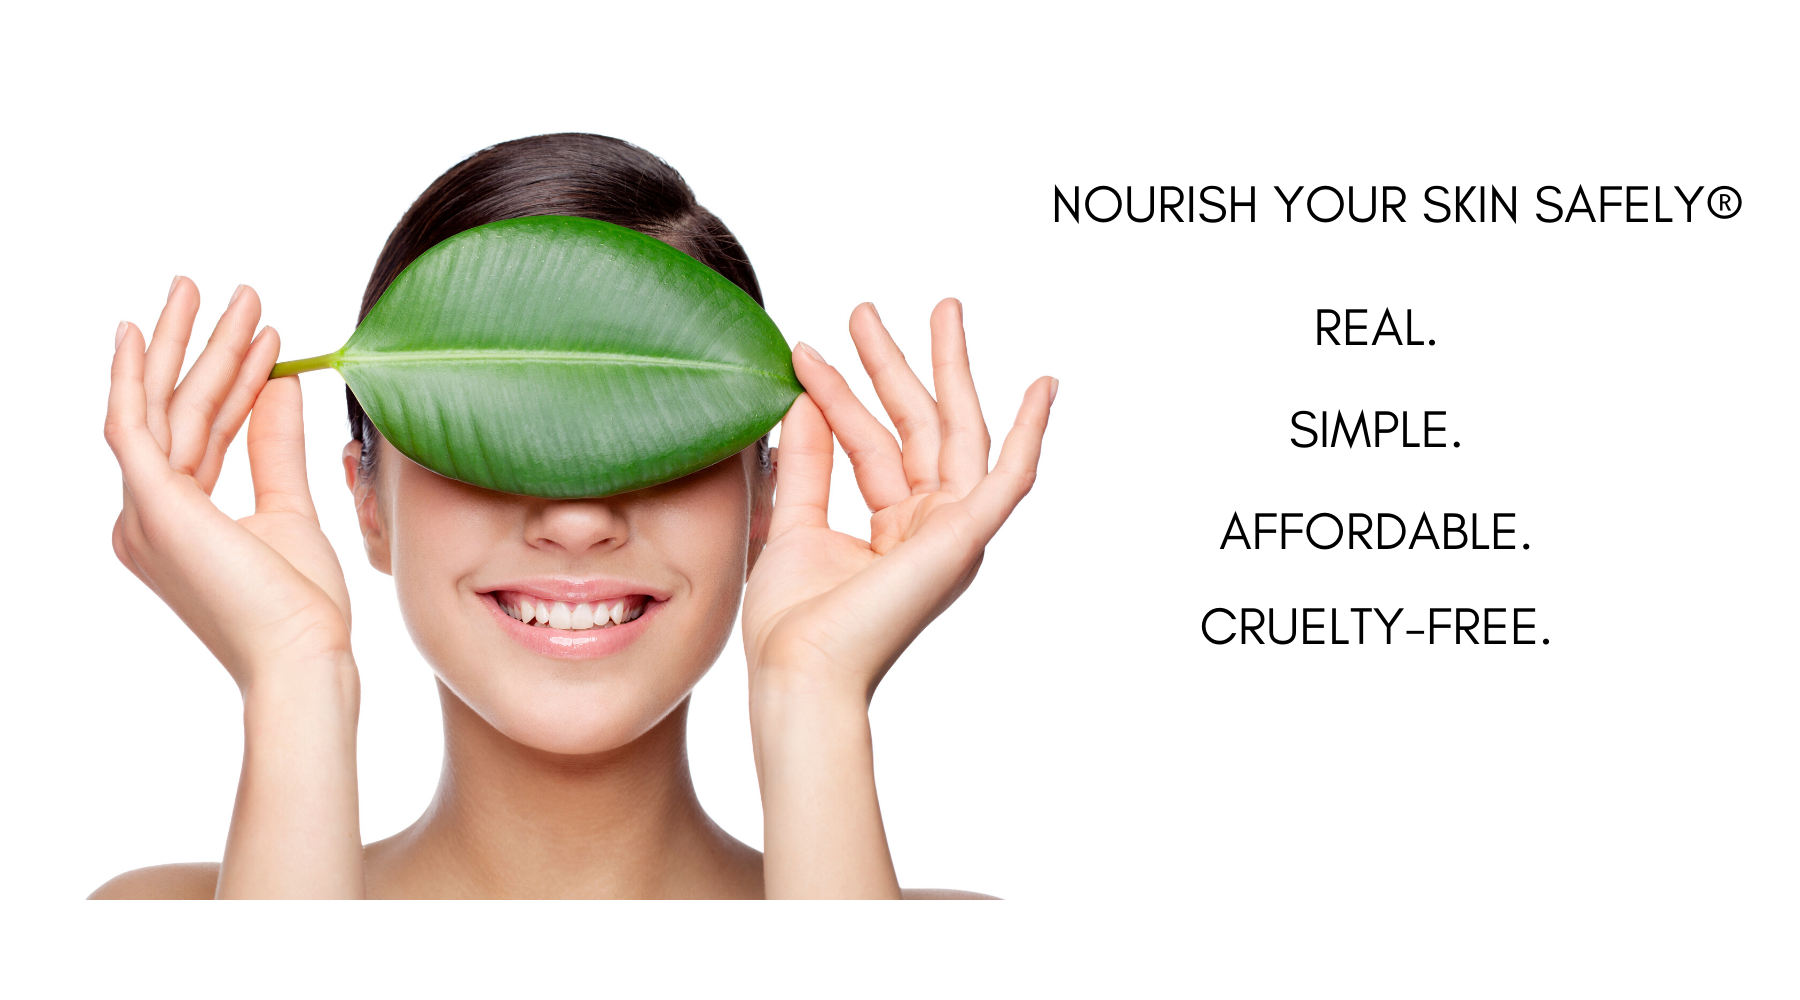 Be Green Bath and Body, Nourish Your Skin Safely.  Our products are real, simple, affordable and cruelty-free.